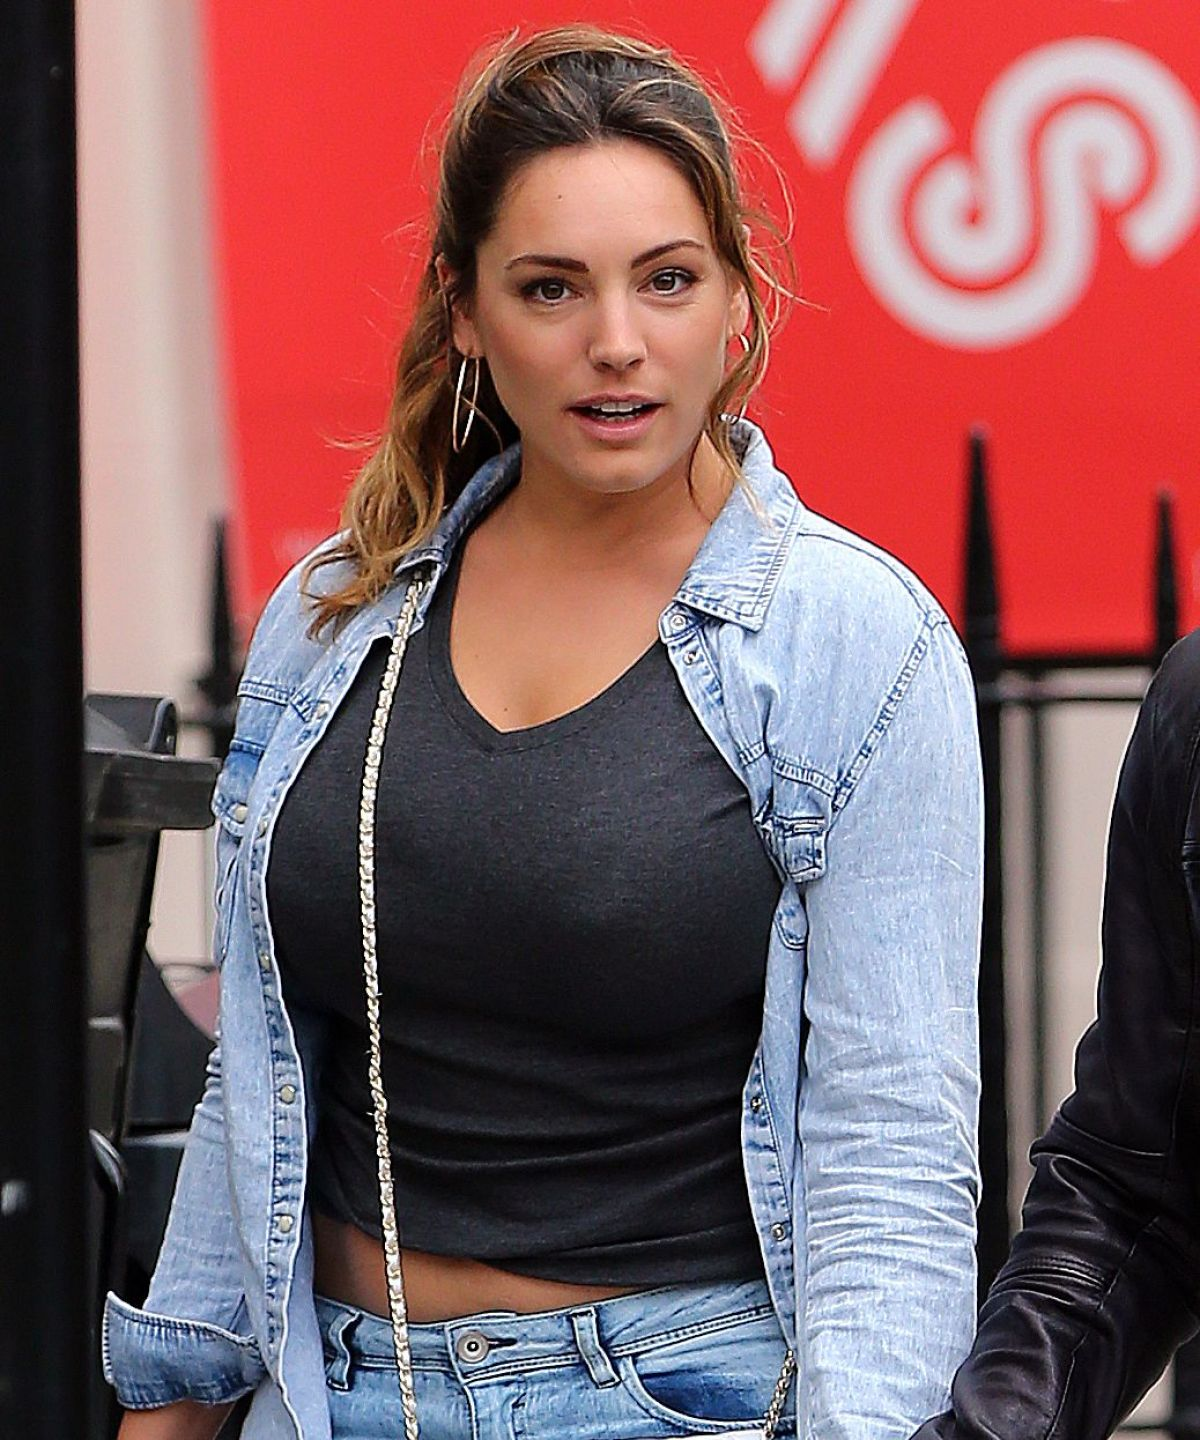 Kelly Brook Hot Topless Images, Sexy Bikini Pictures